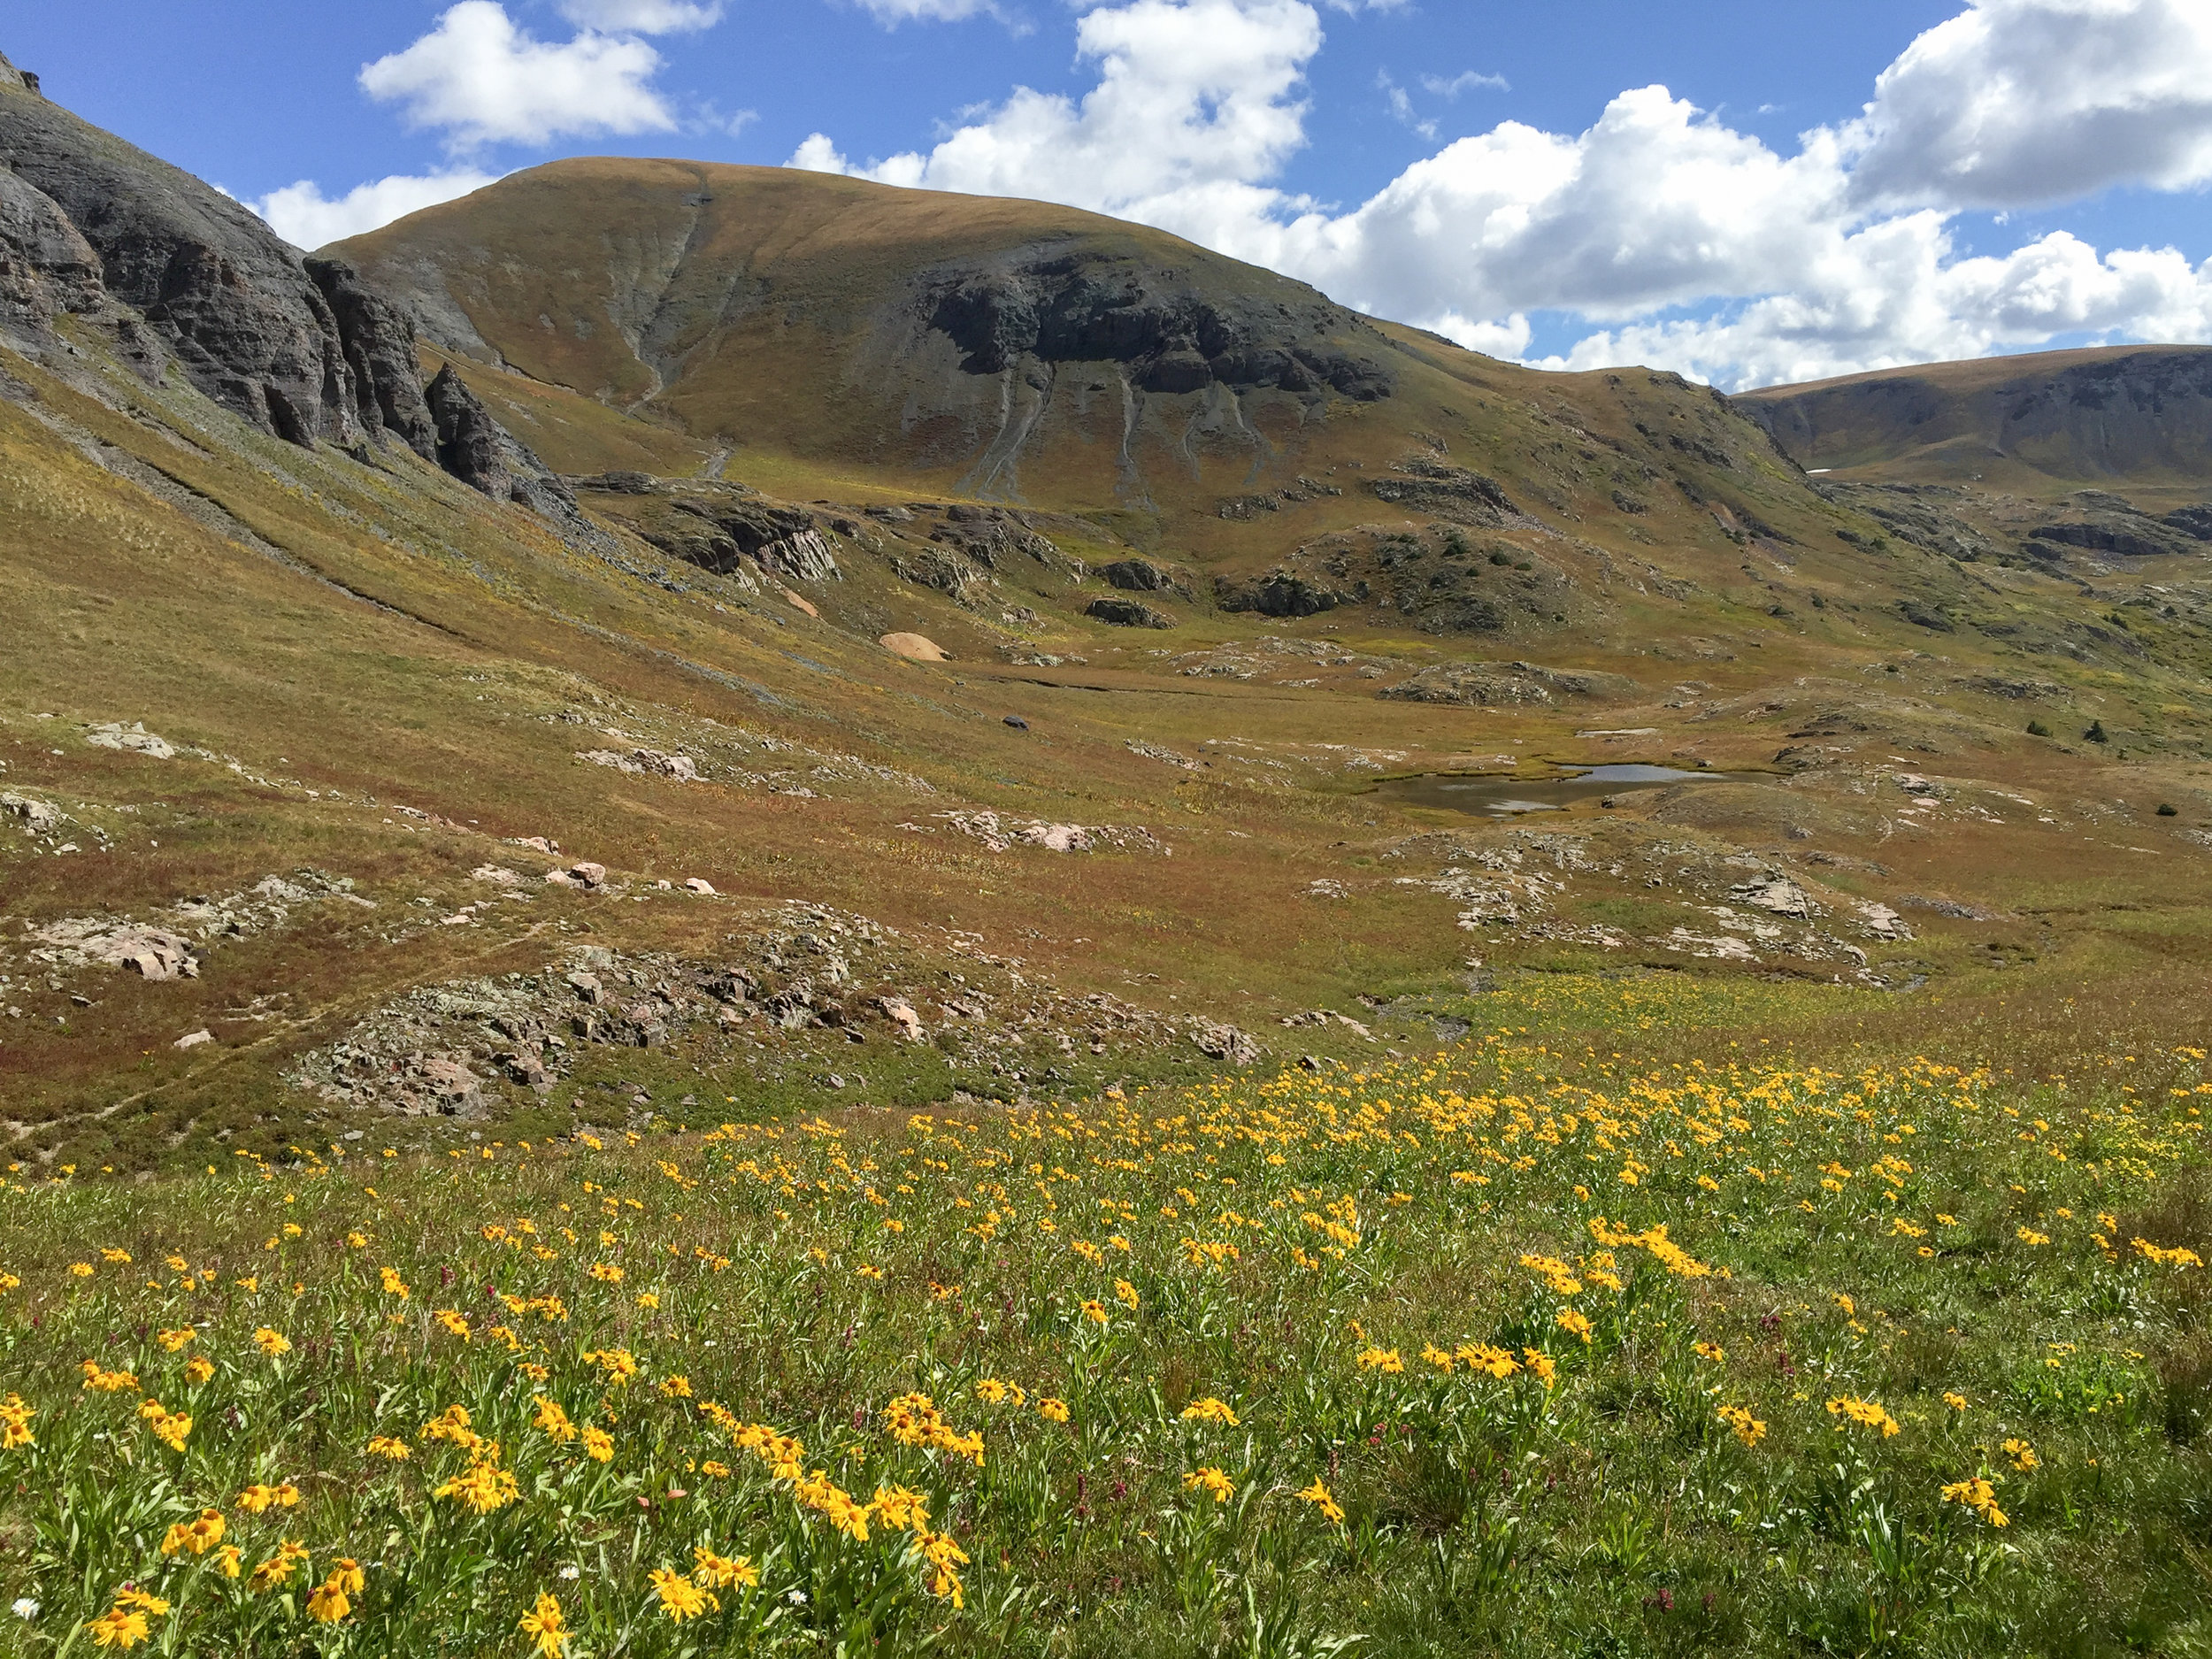 Hard to believe there are still lots of wildflowers